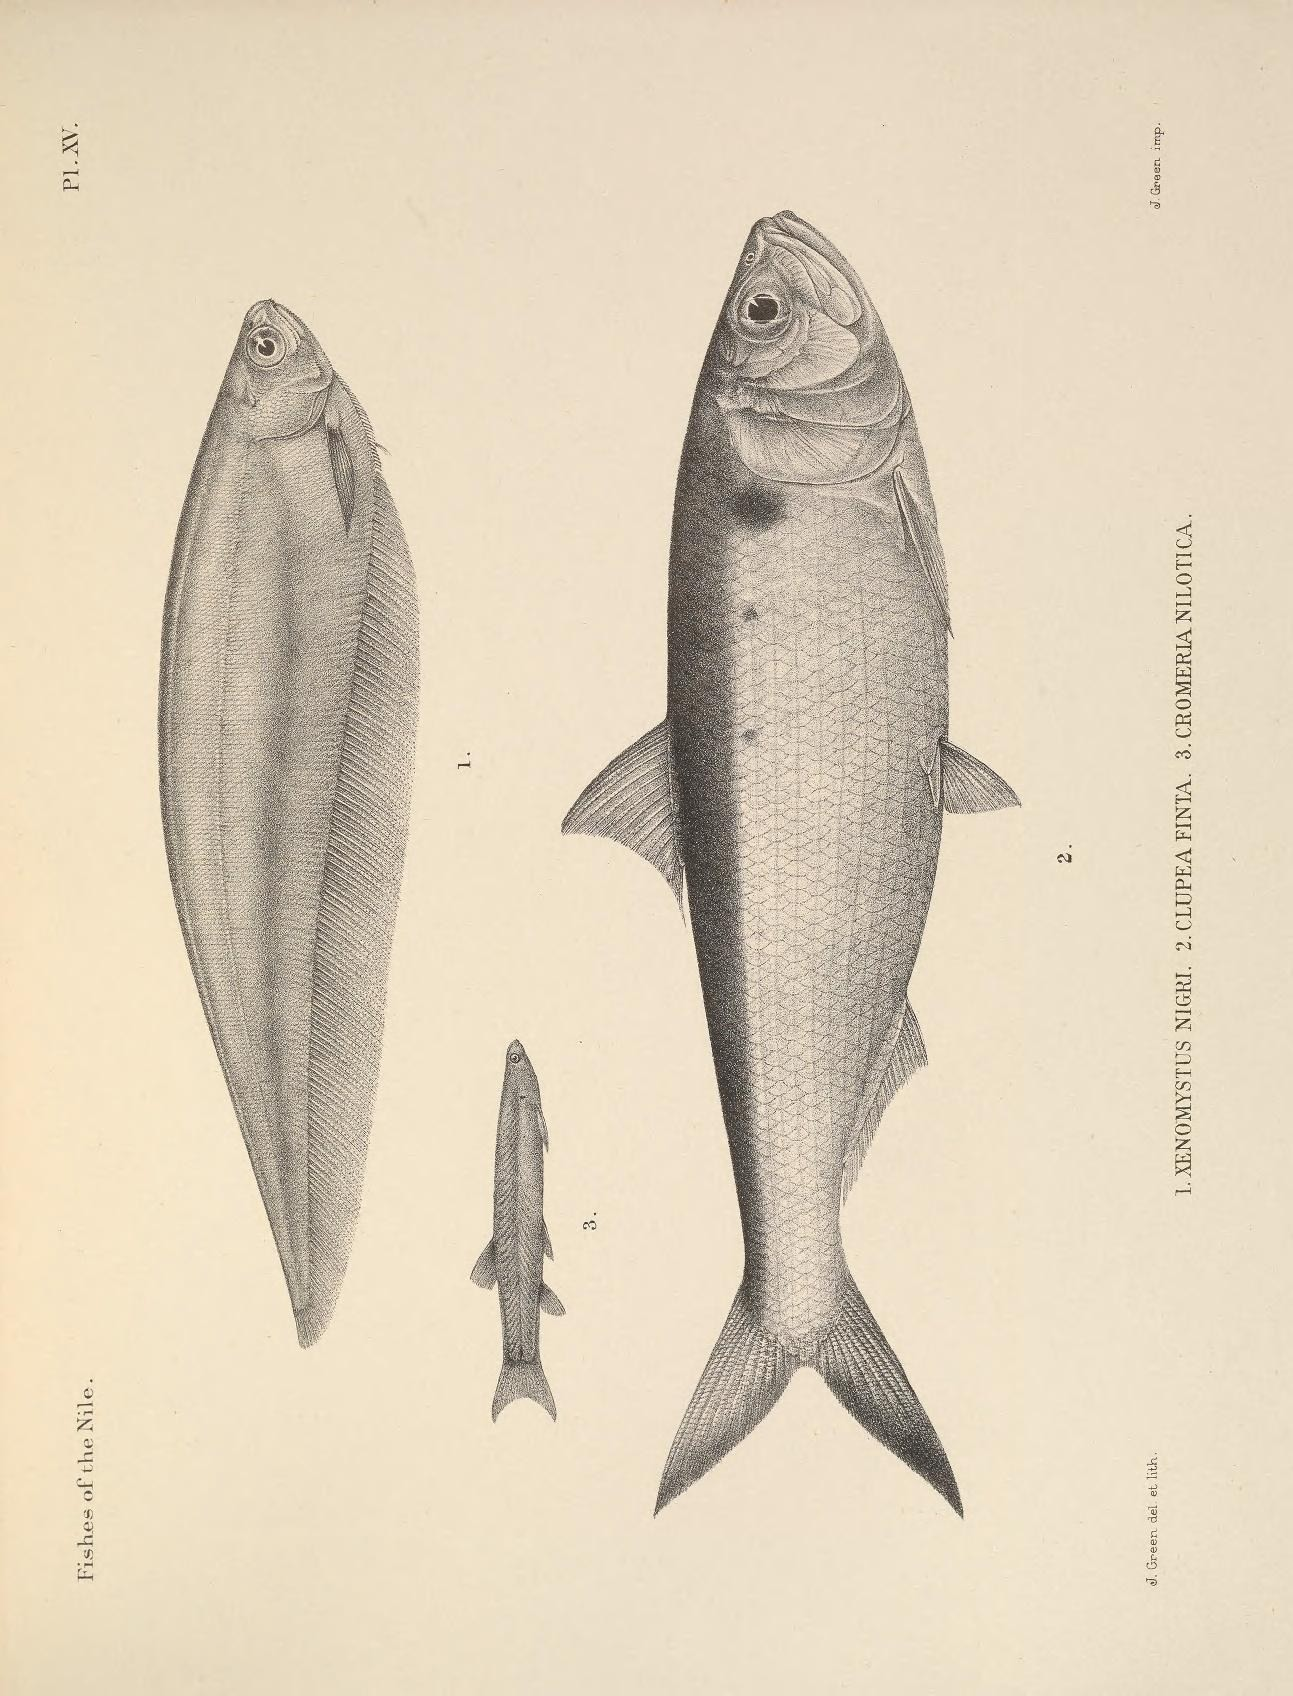 Image of African knifefish